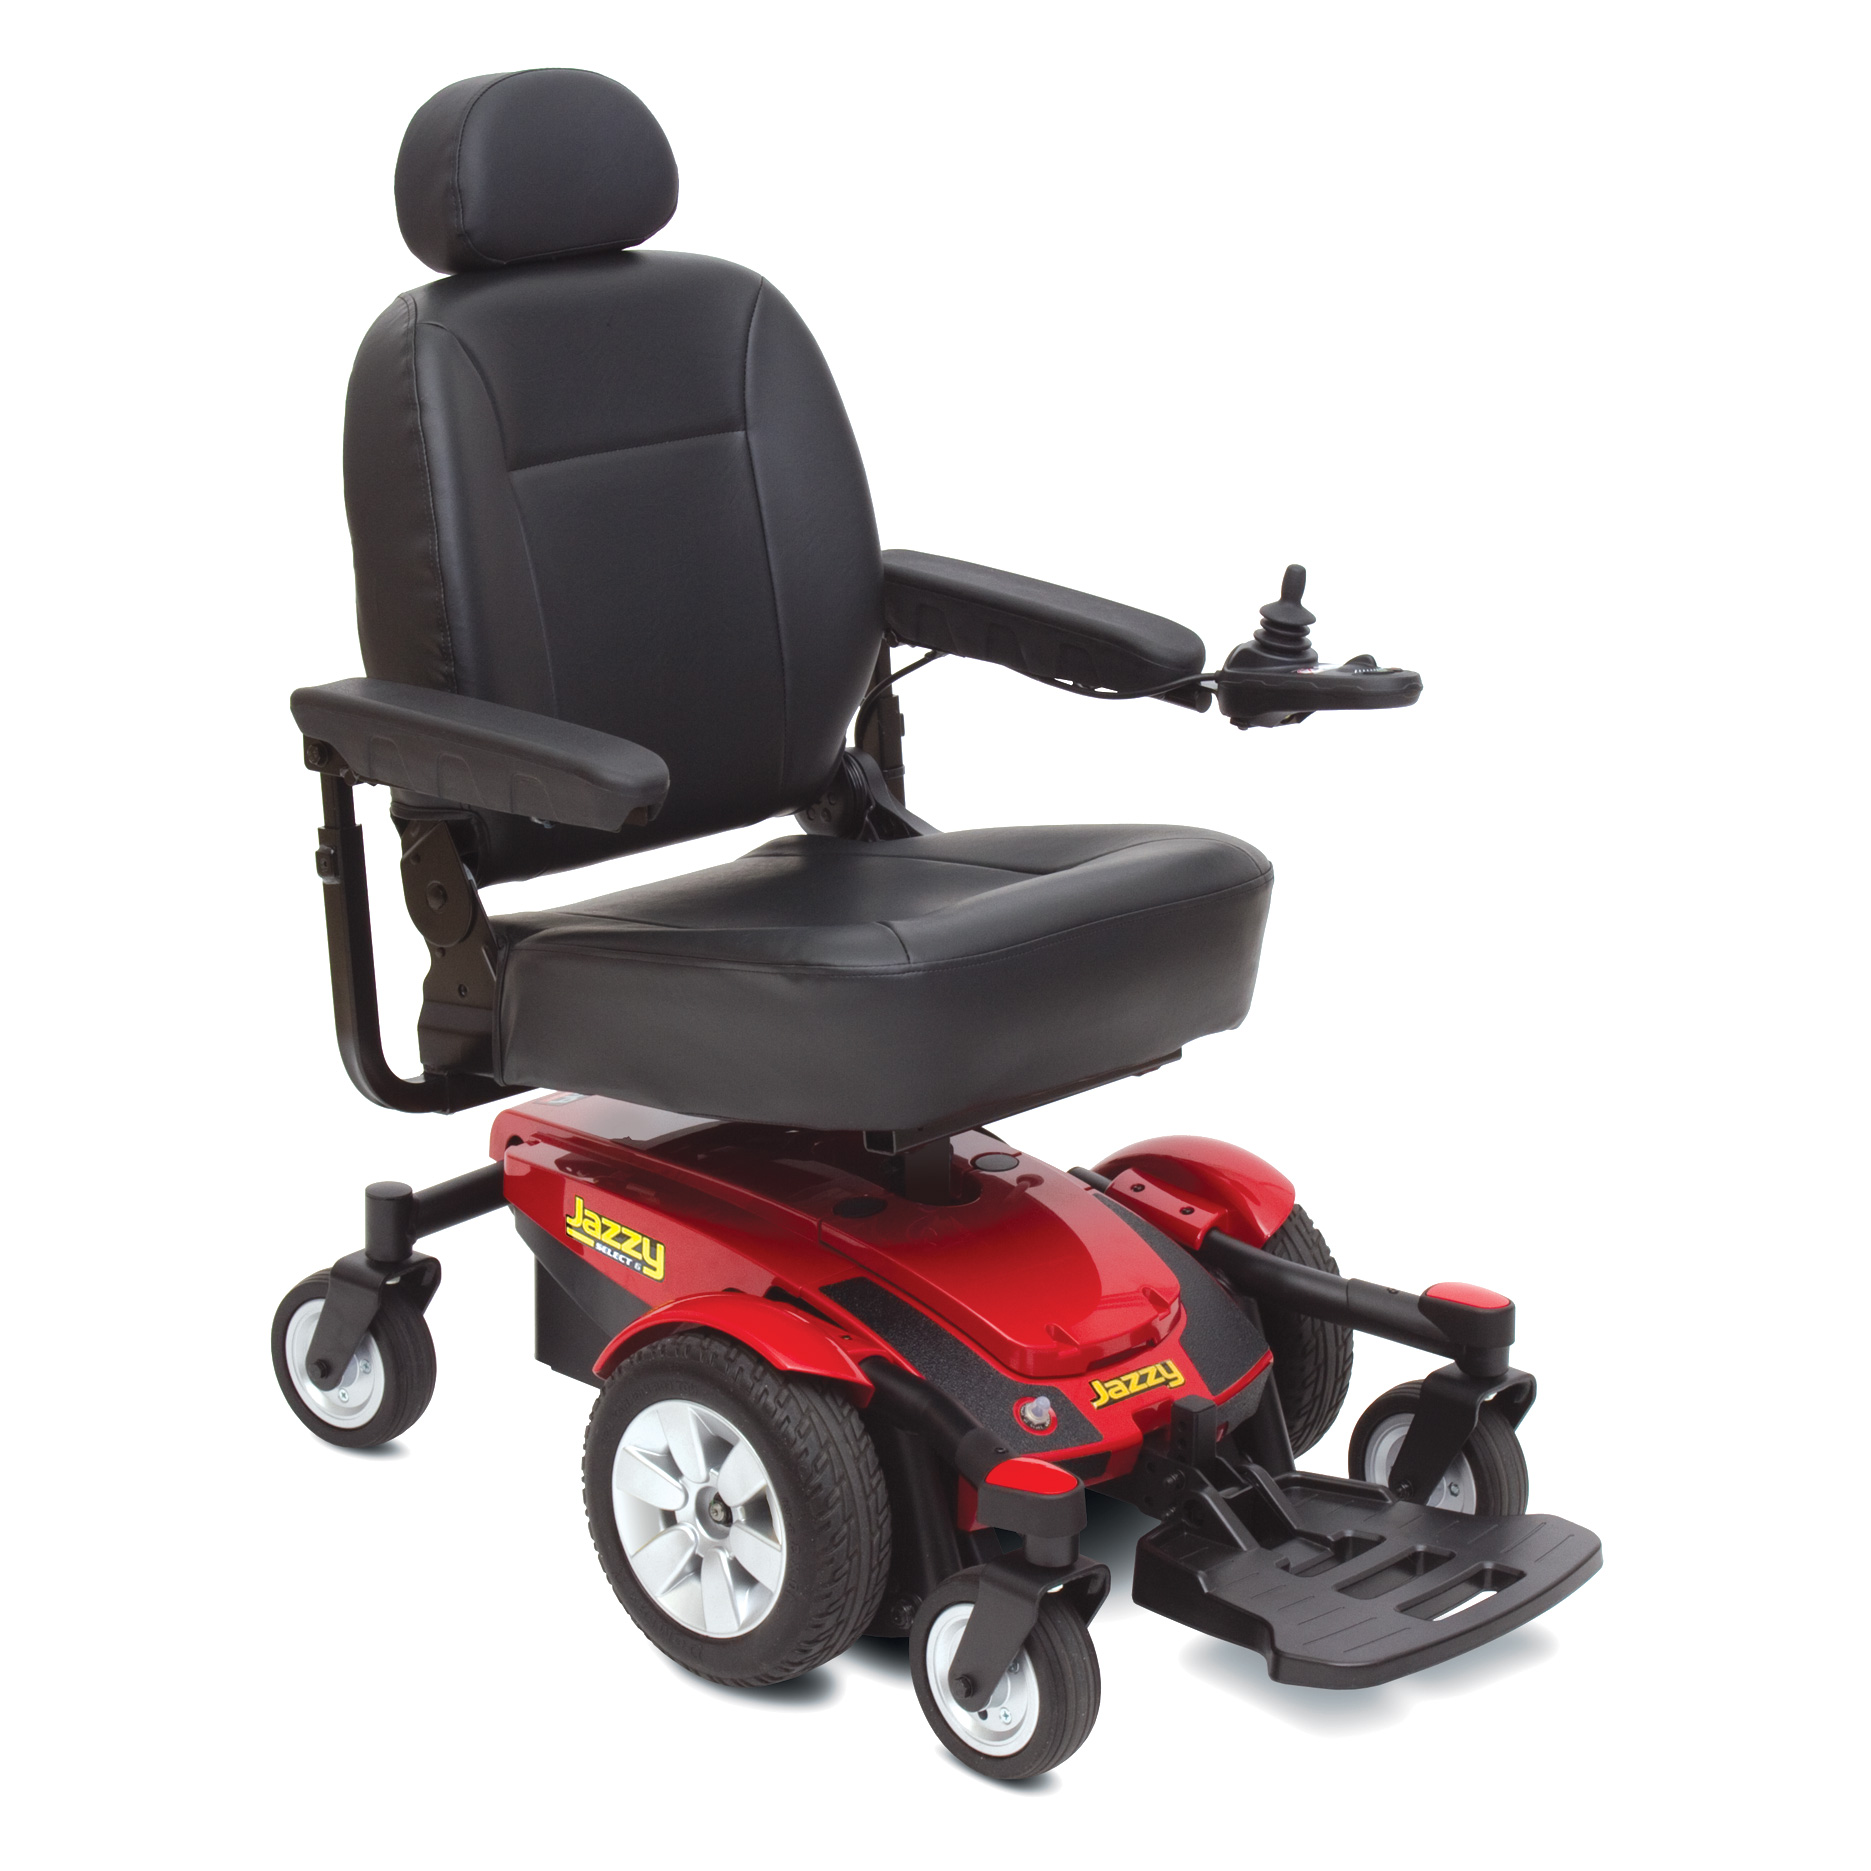 Uncategorized Mobility Chairs With Wheels bigapplemobility is 1 electric scooter and wheelchair company in manufacturer pride mobility